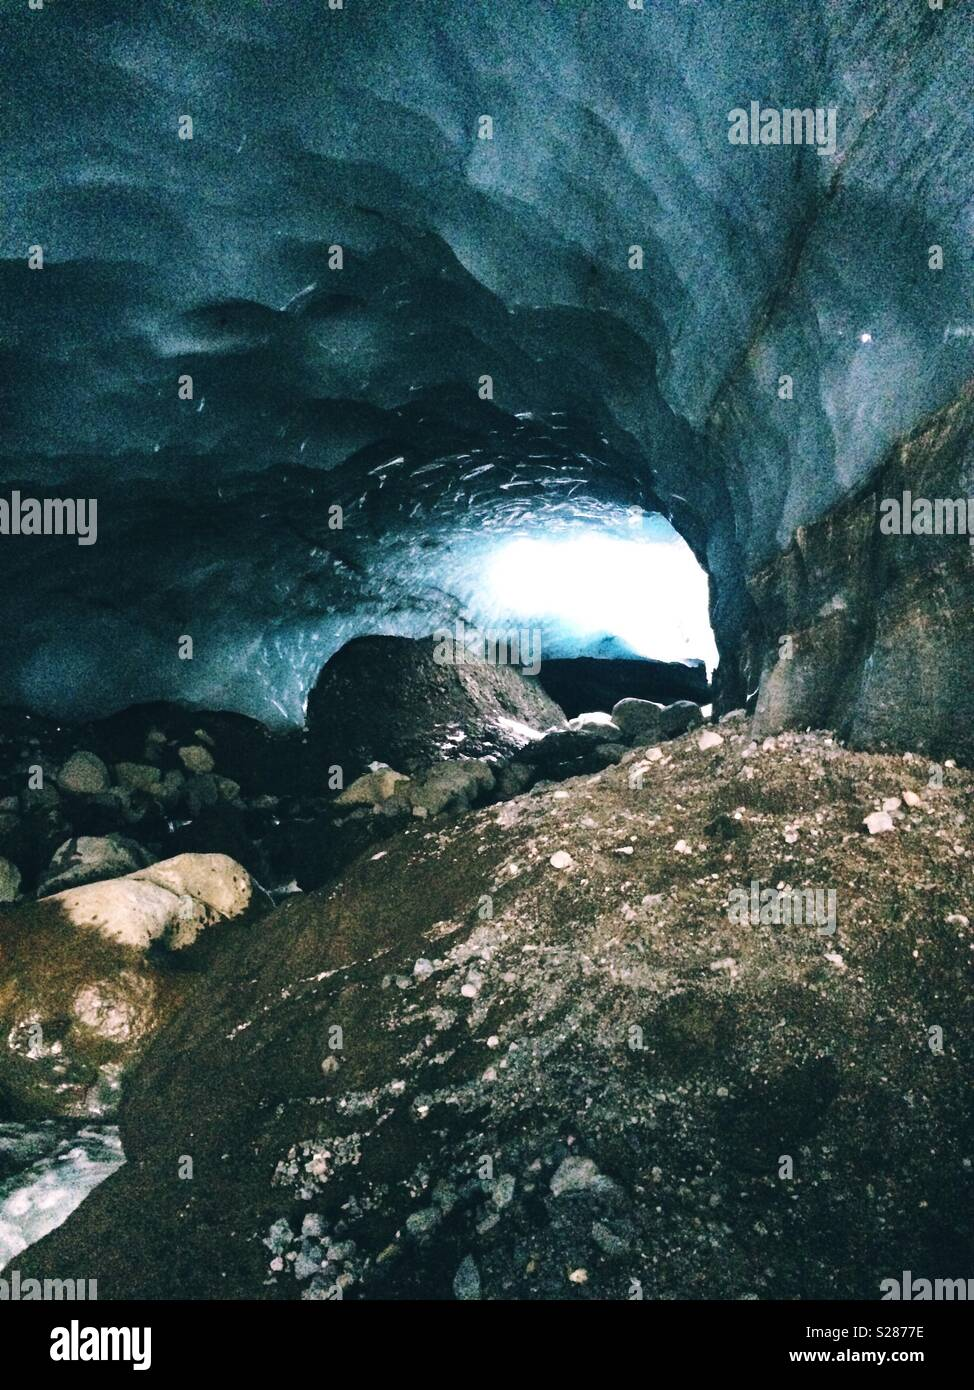 Inside an ice cave in Iceland - Stock Image